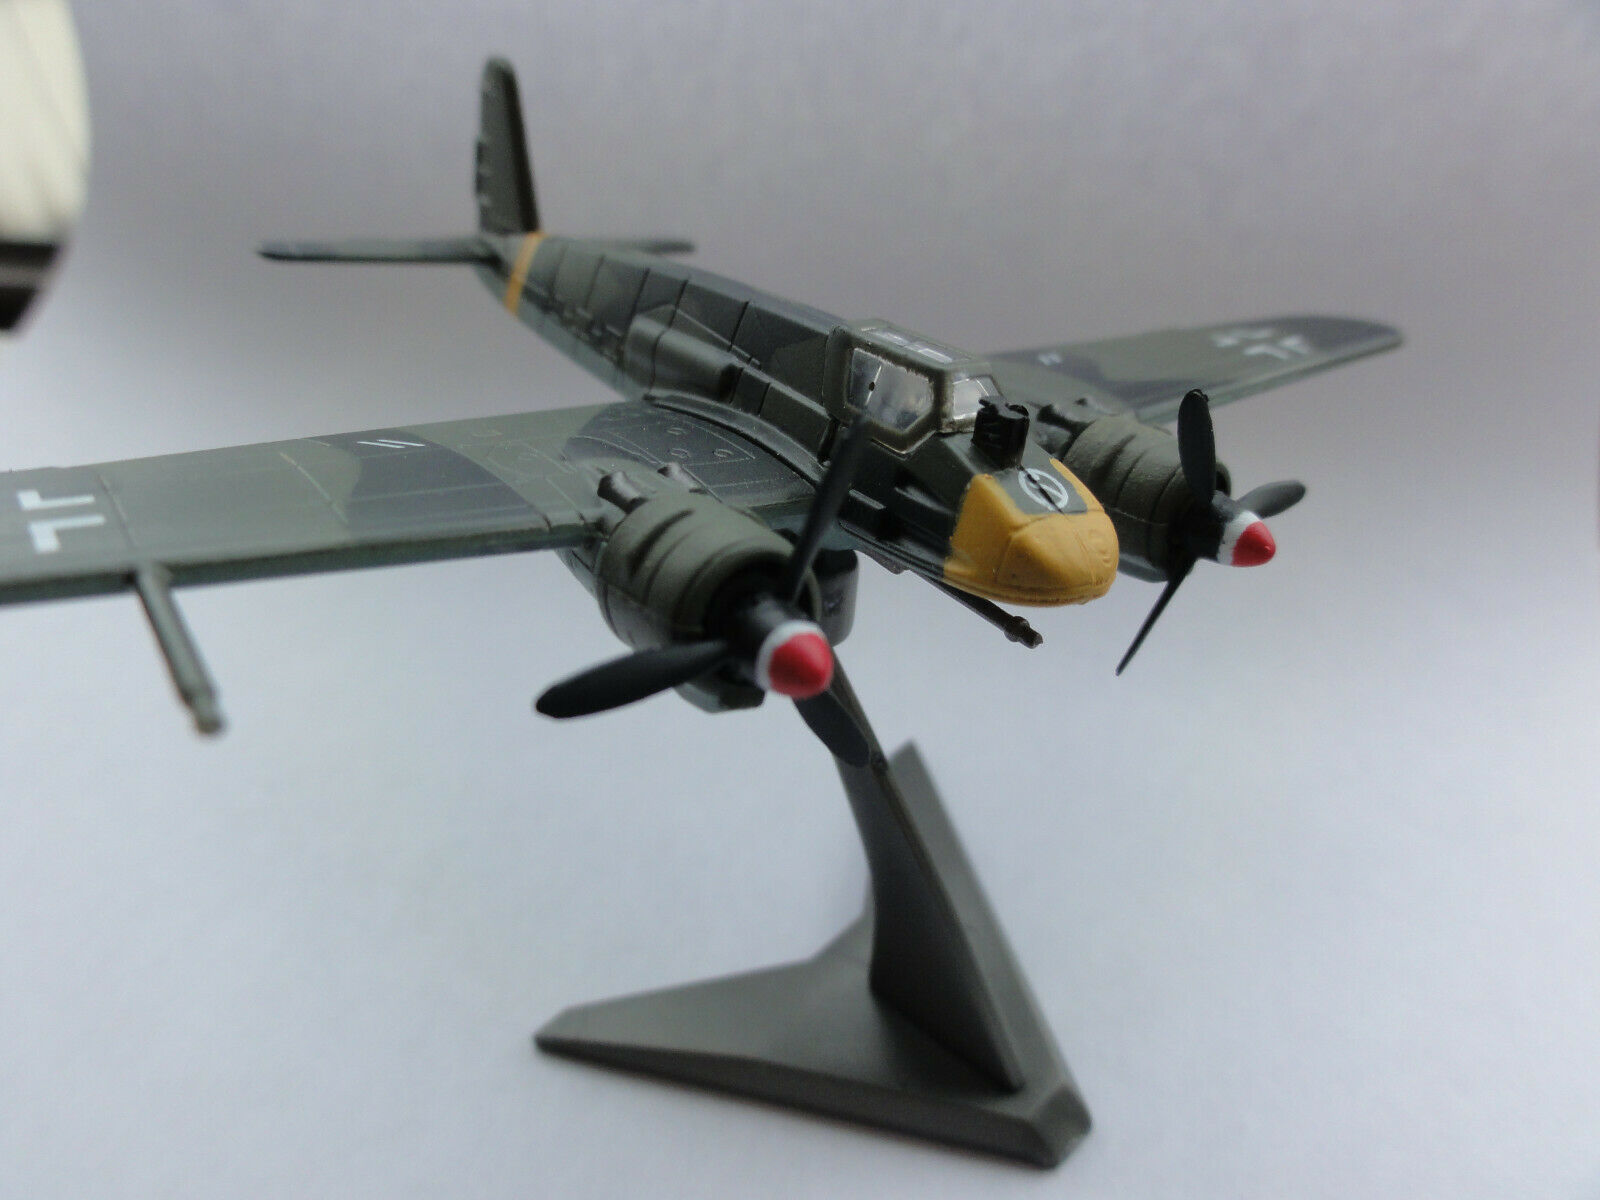 Luftwaffe Henschel Hs-129 - 1 144 TWIN-ENGIN AIRCRAFT COLLECTION by F-Toys